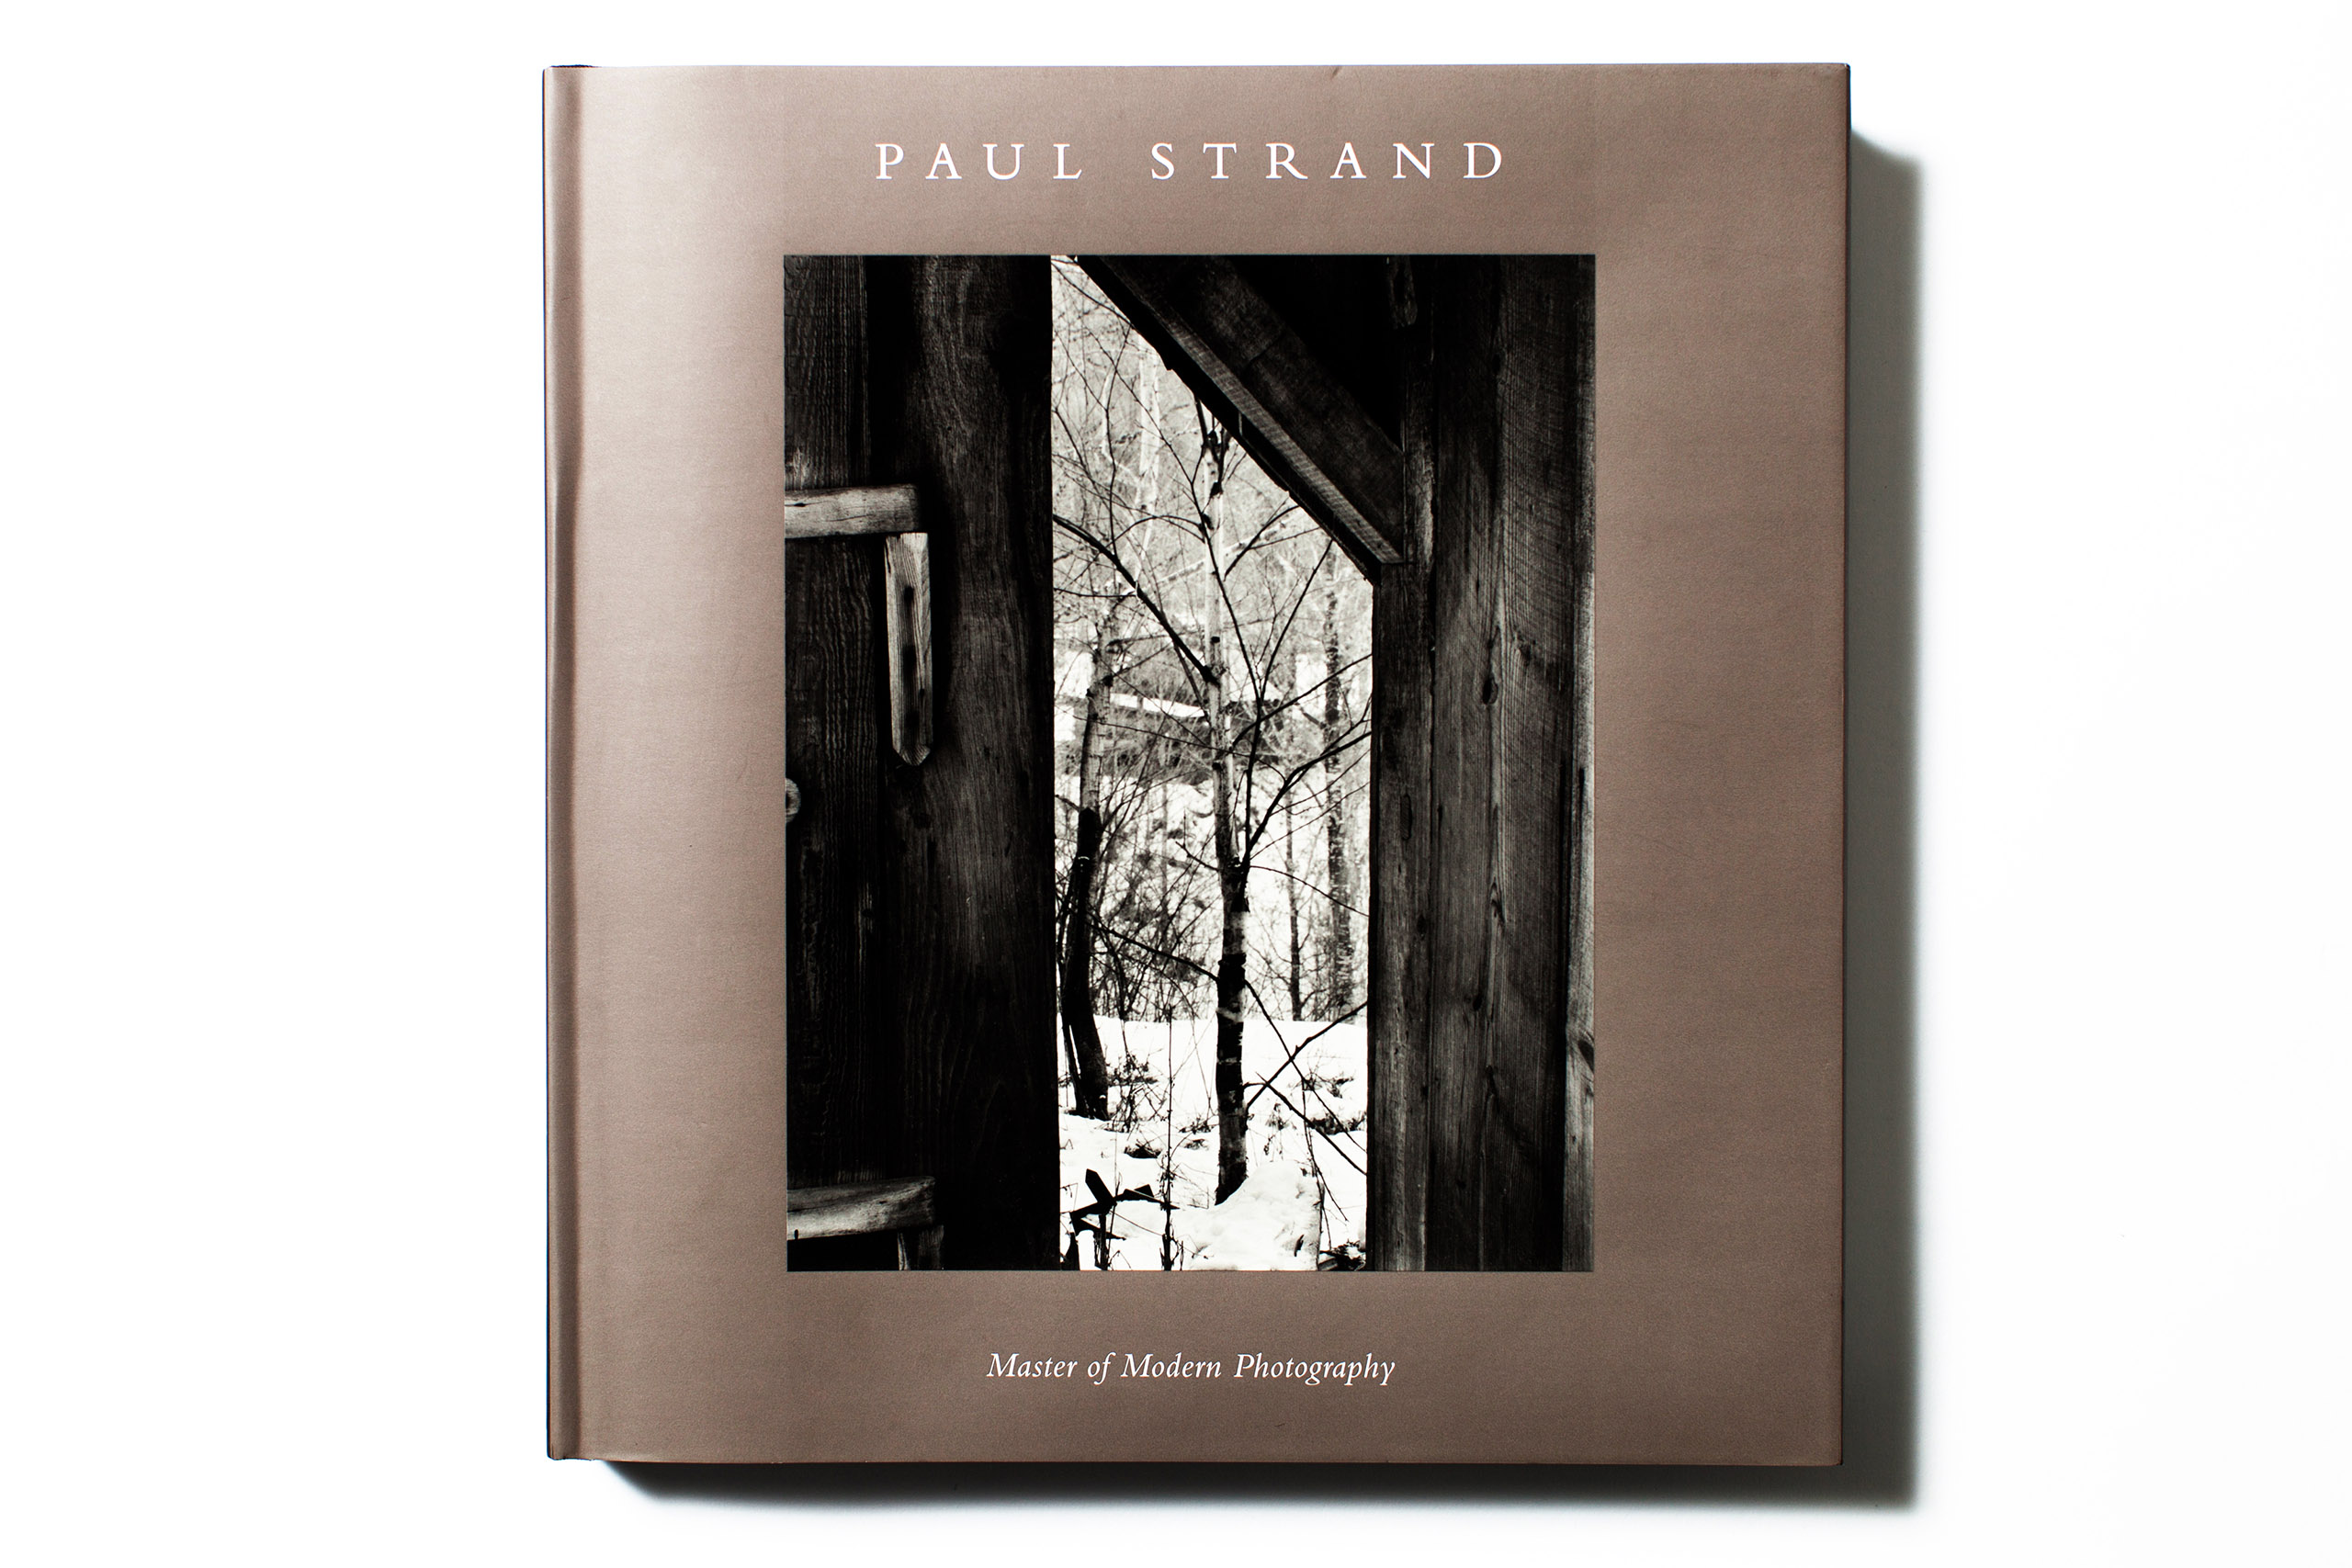 """<a href=""""""""><i><b>                                   Paul Strand: Master of Modern Photography                                   </i></b></a> published by the Philadelphia Museum of Art, selected by Richard Conway, reporter and producer for <i>TIME</i> LightBox."""